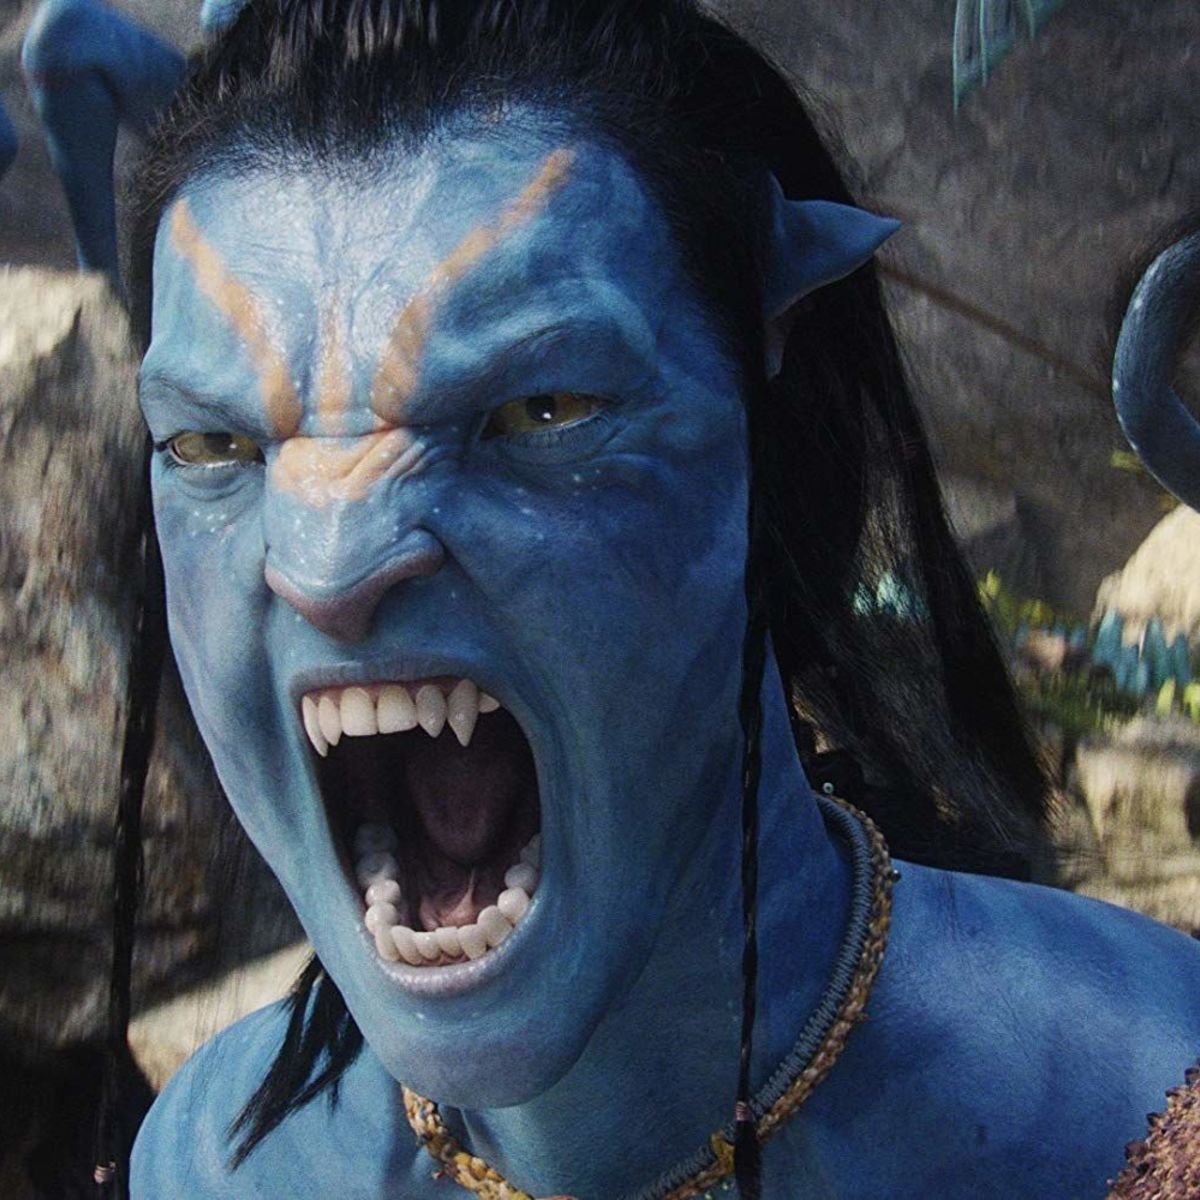 Avatar 2 Full Movie Watch Online: Have The Titles To James Cameron's Avatar Sequels Been